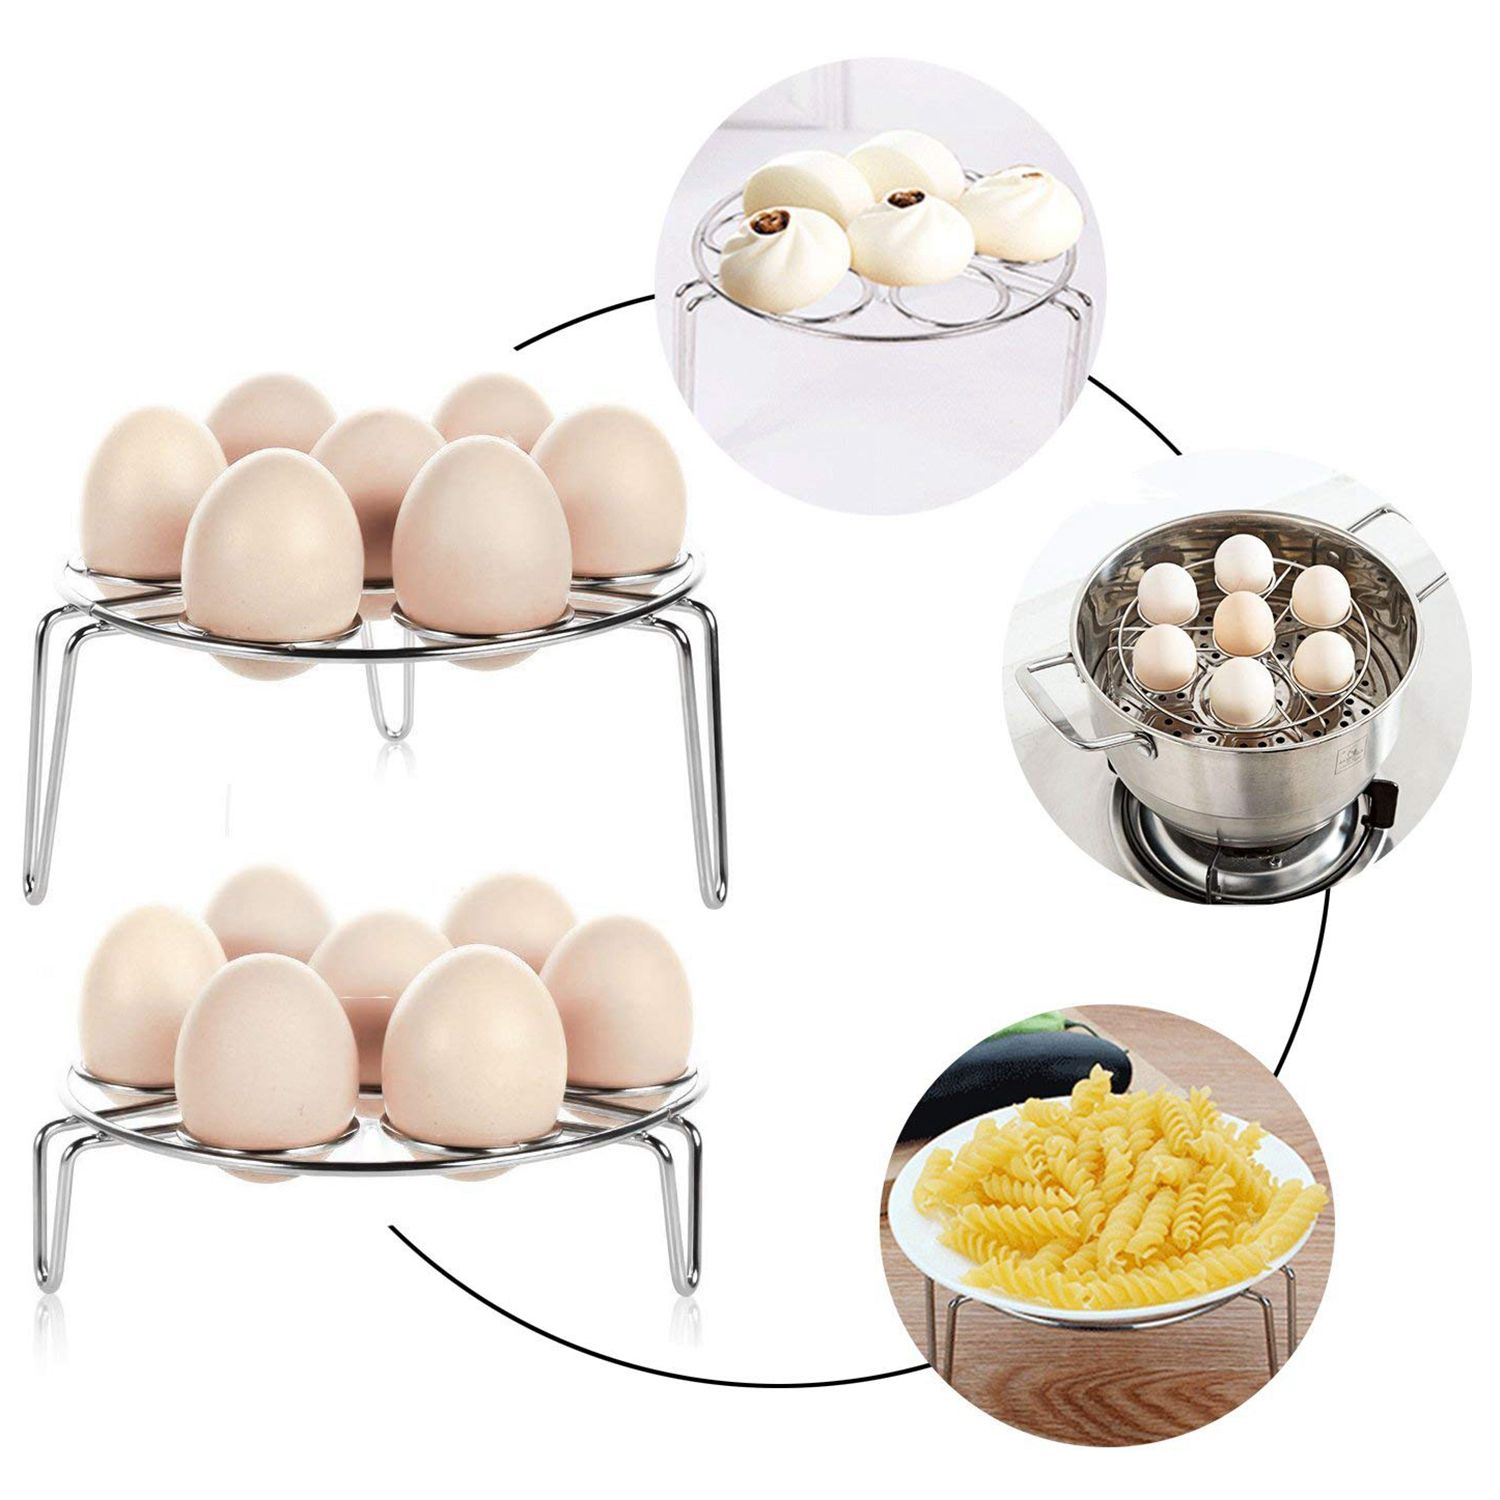 2PC 7 Egg Steamer Rack Holder For Cooking,Steamers Stock Basket Stand Pasta Pots, 304 Stainless Steel Pressure Cooker accessor